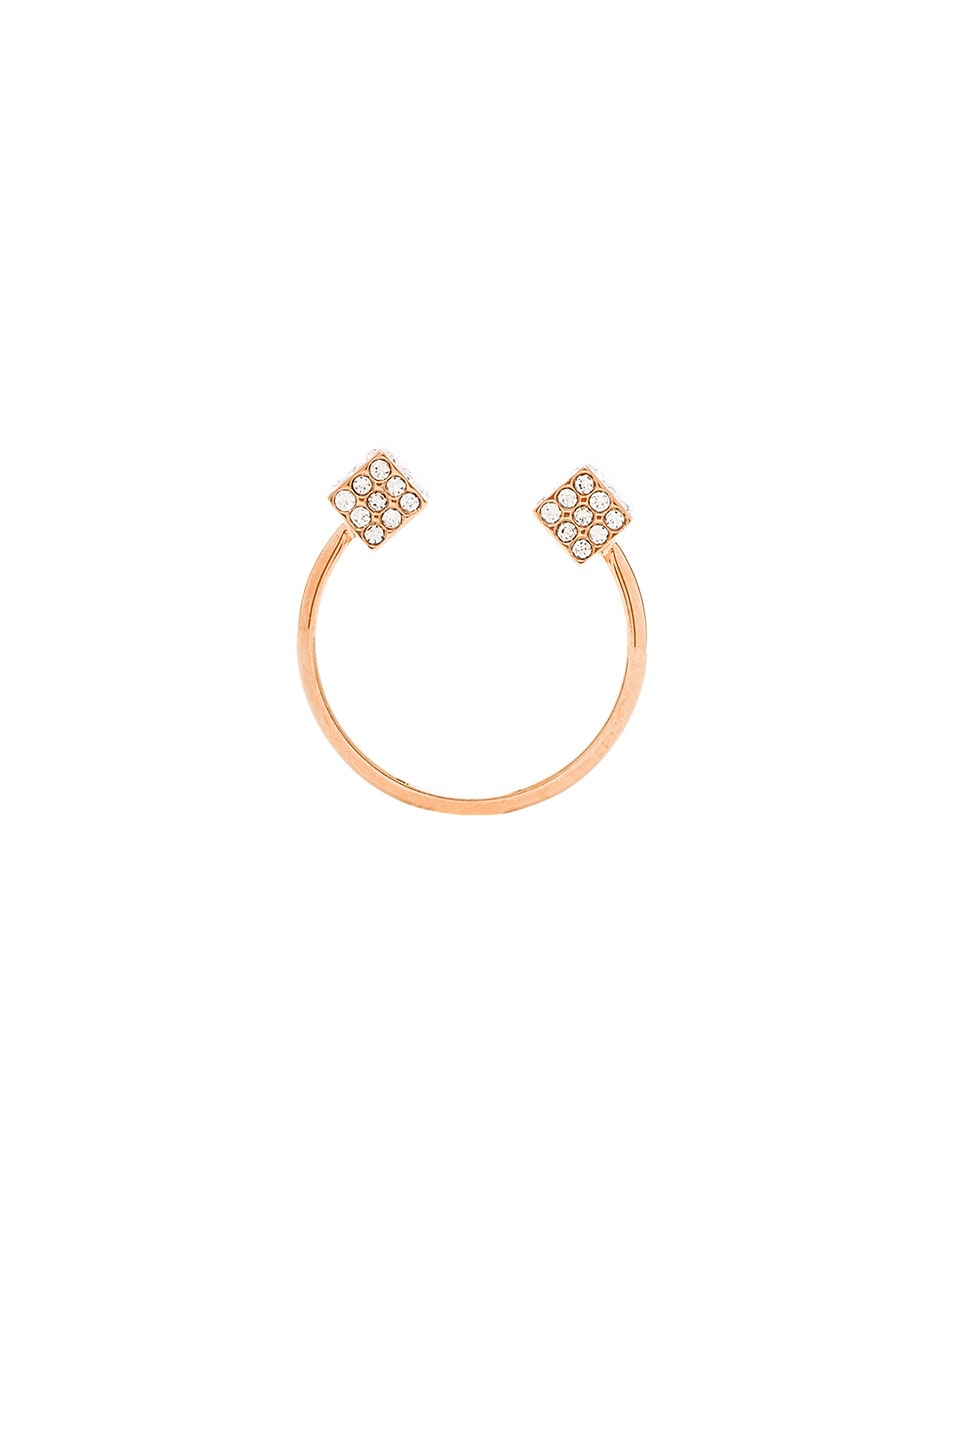 Vita Fede Ultra Mini Double Cubo Ring in Rosegold & Clear